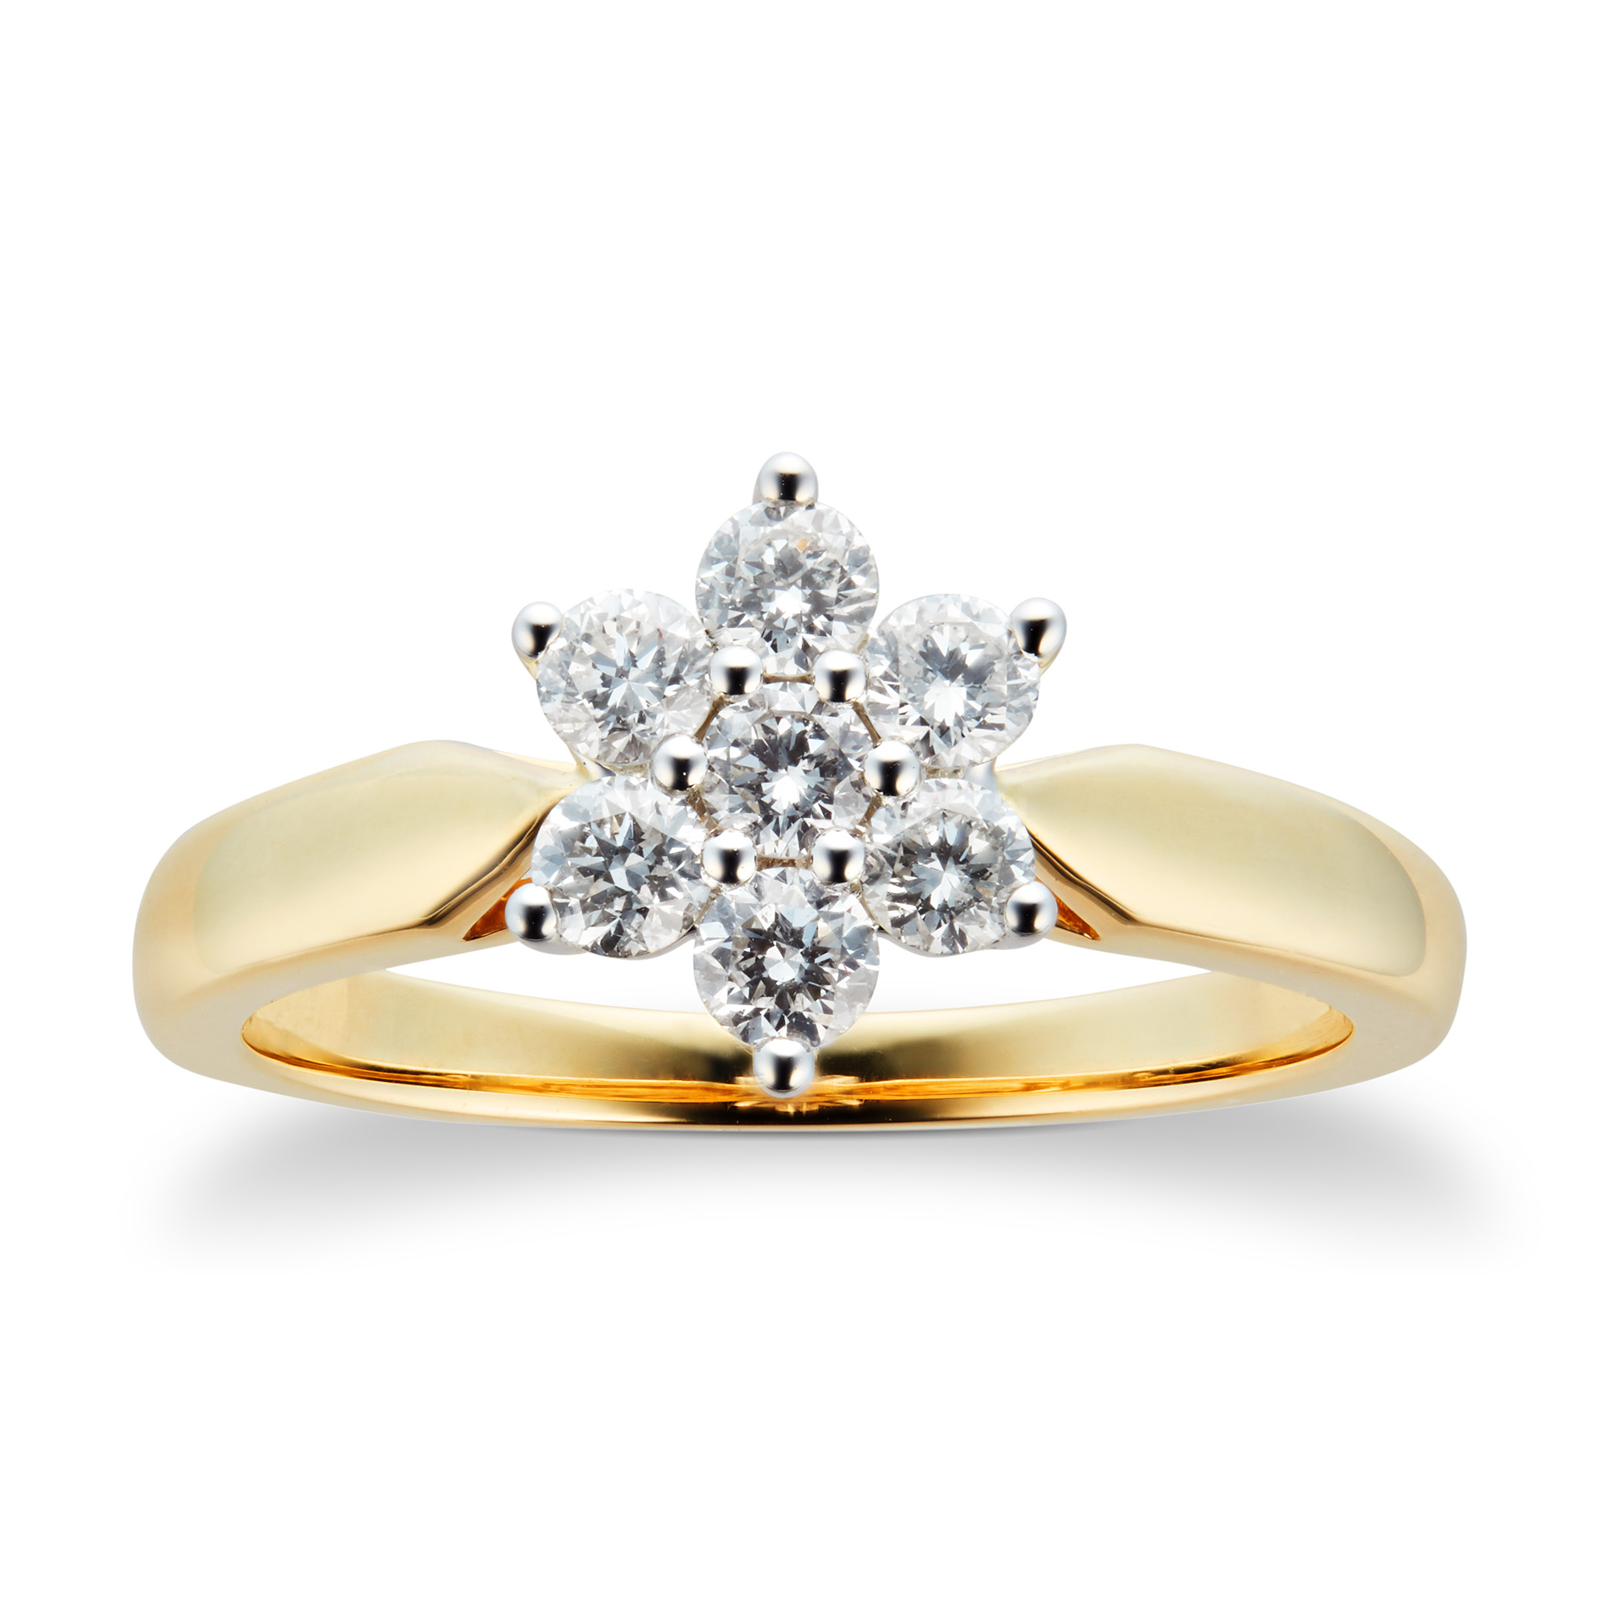 18ct Yellow Gold 0.50ct 88 Facet Diamond Cluster Ring - Ring Size J